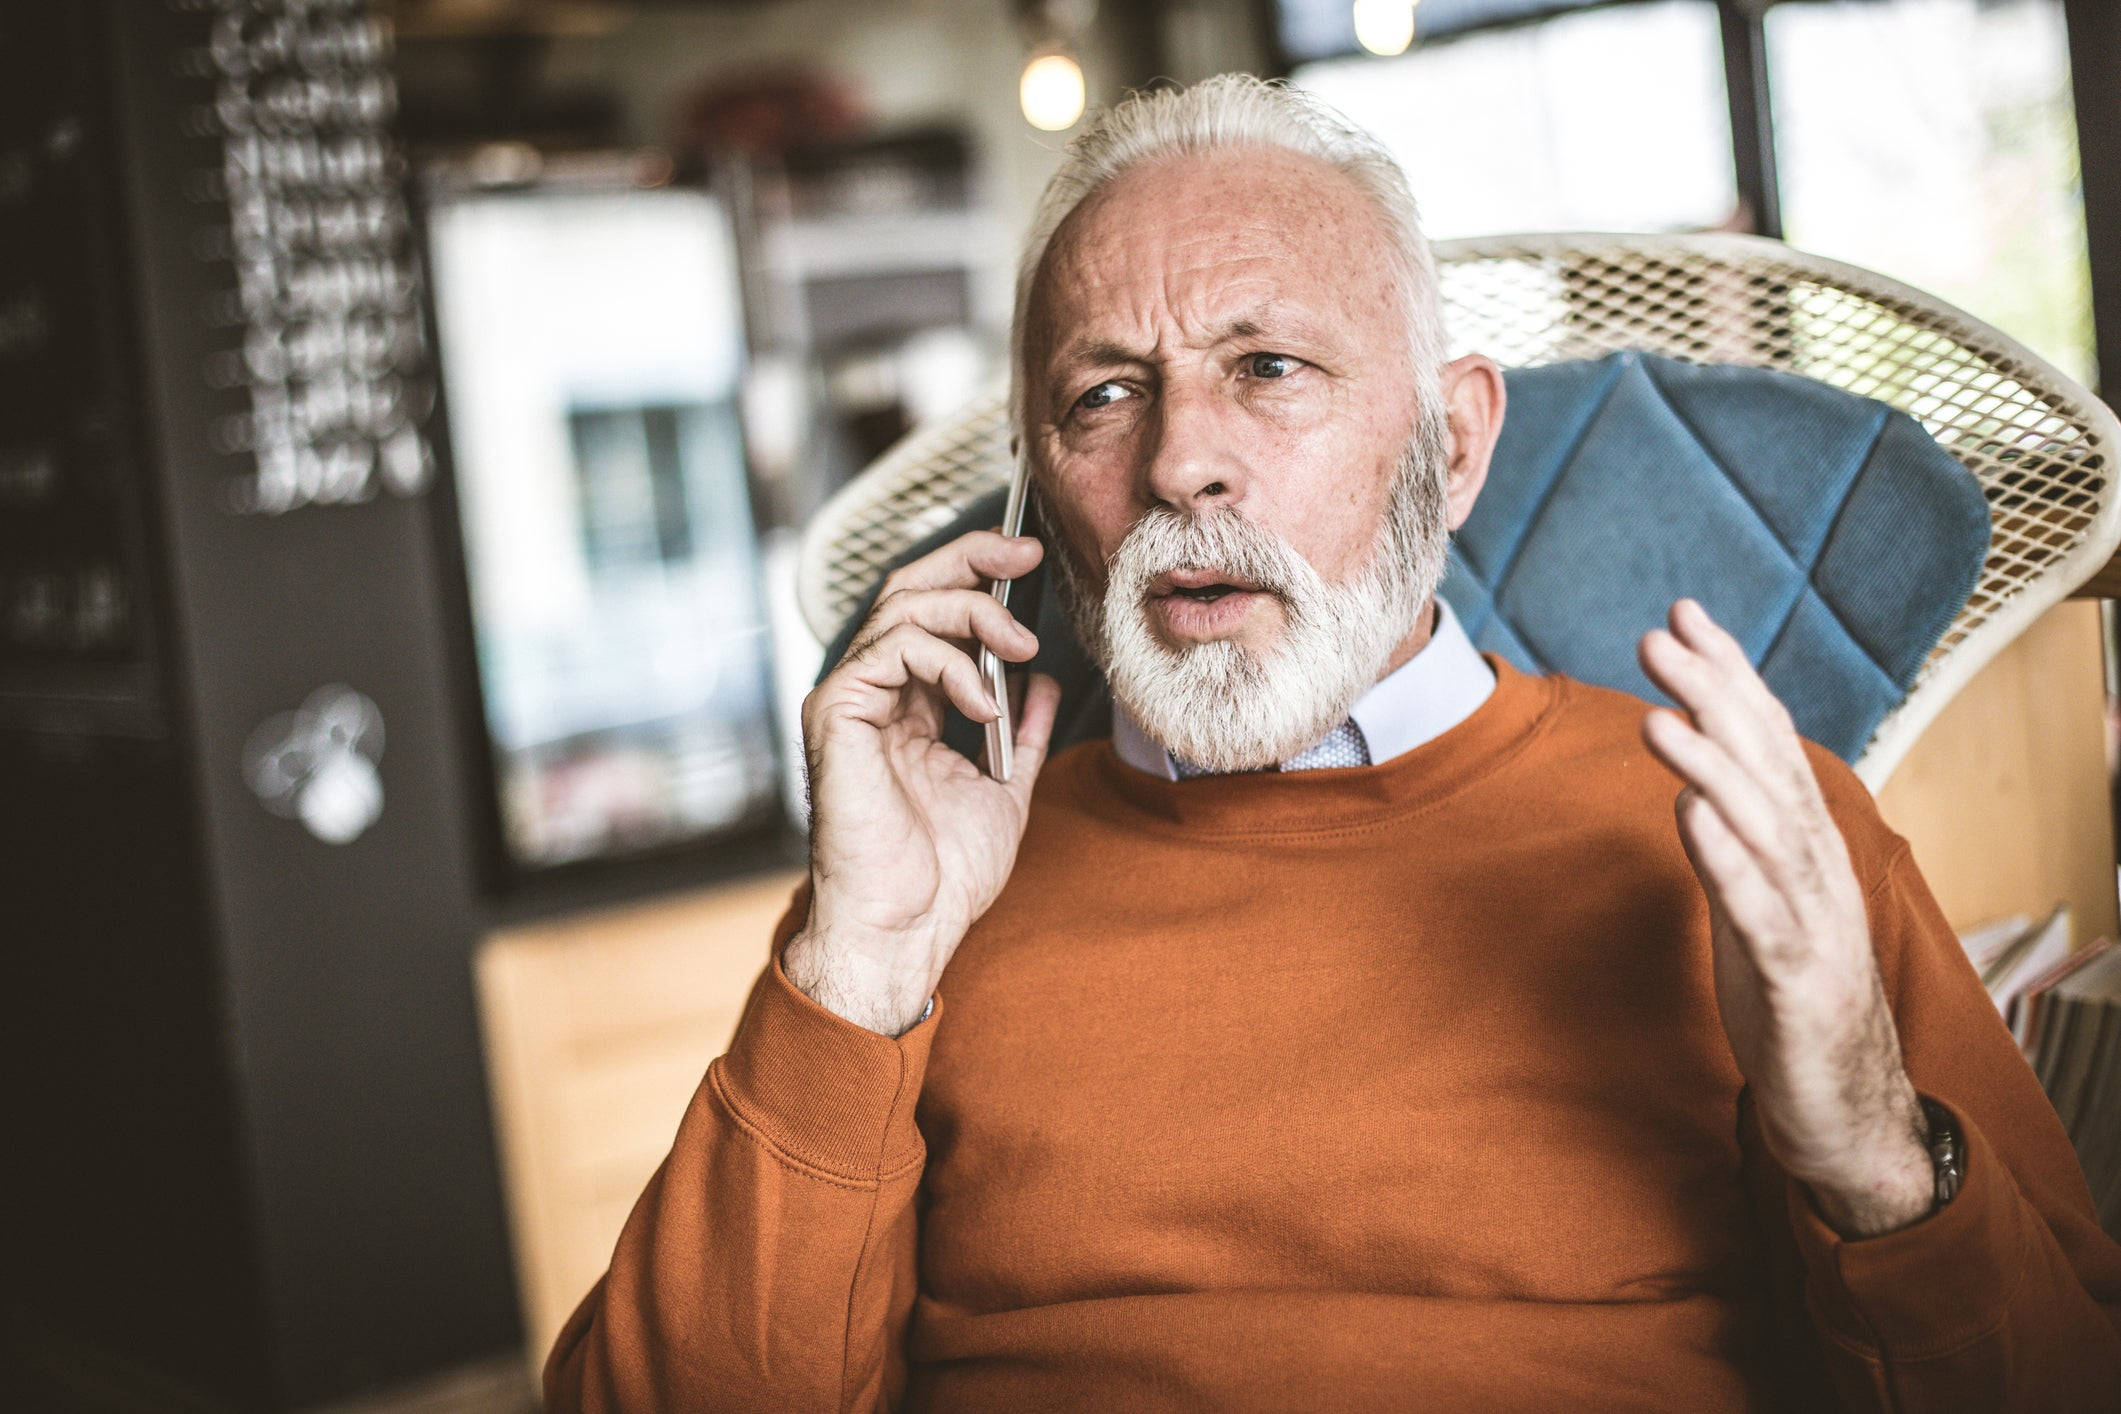 The Department of Justice Is Cracking Down on Social Security Scam Calls | The Motley Fool